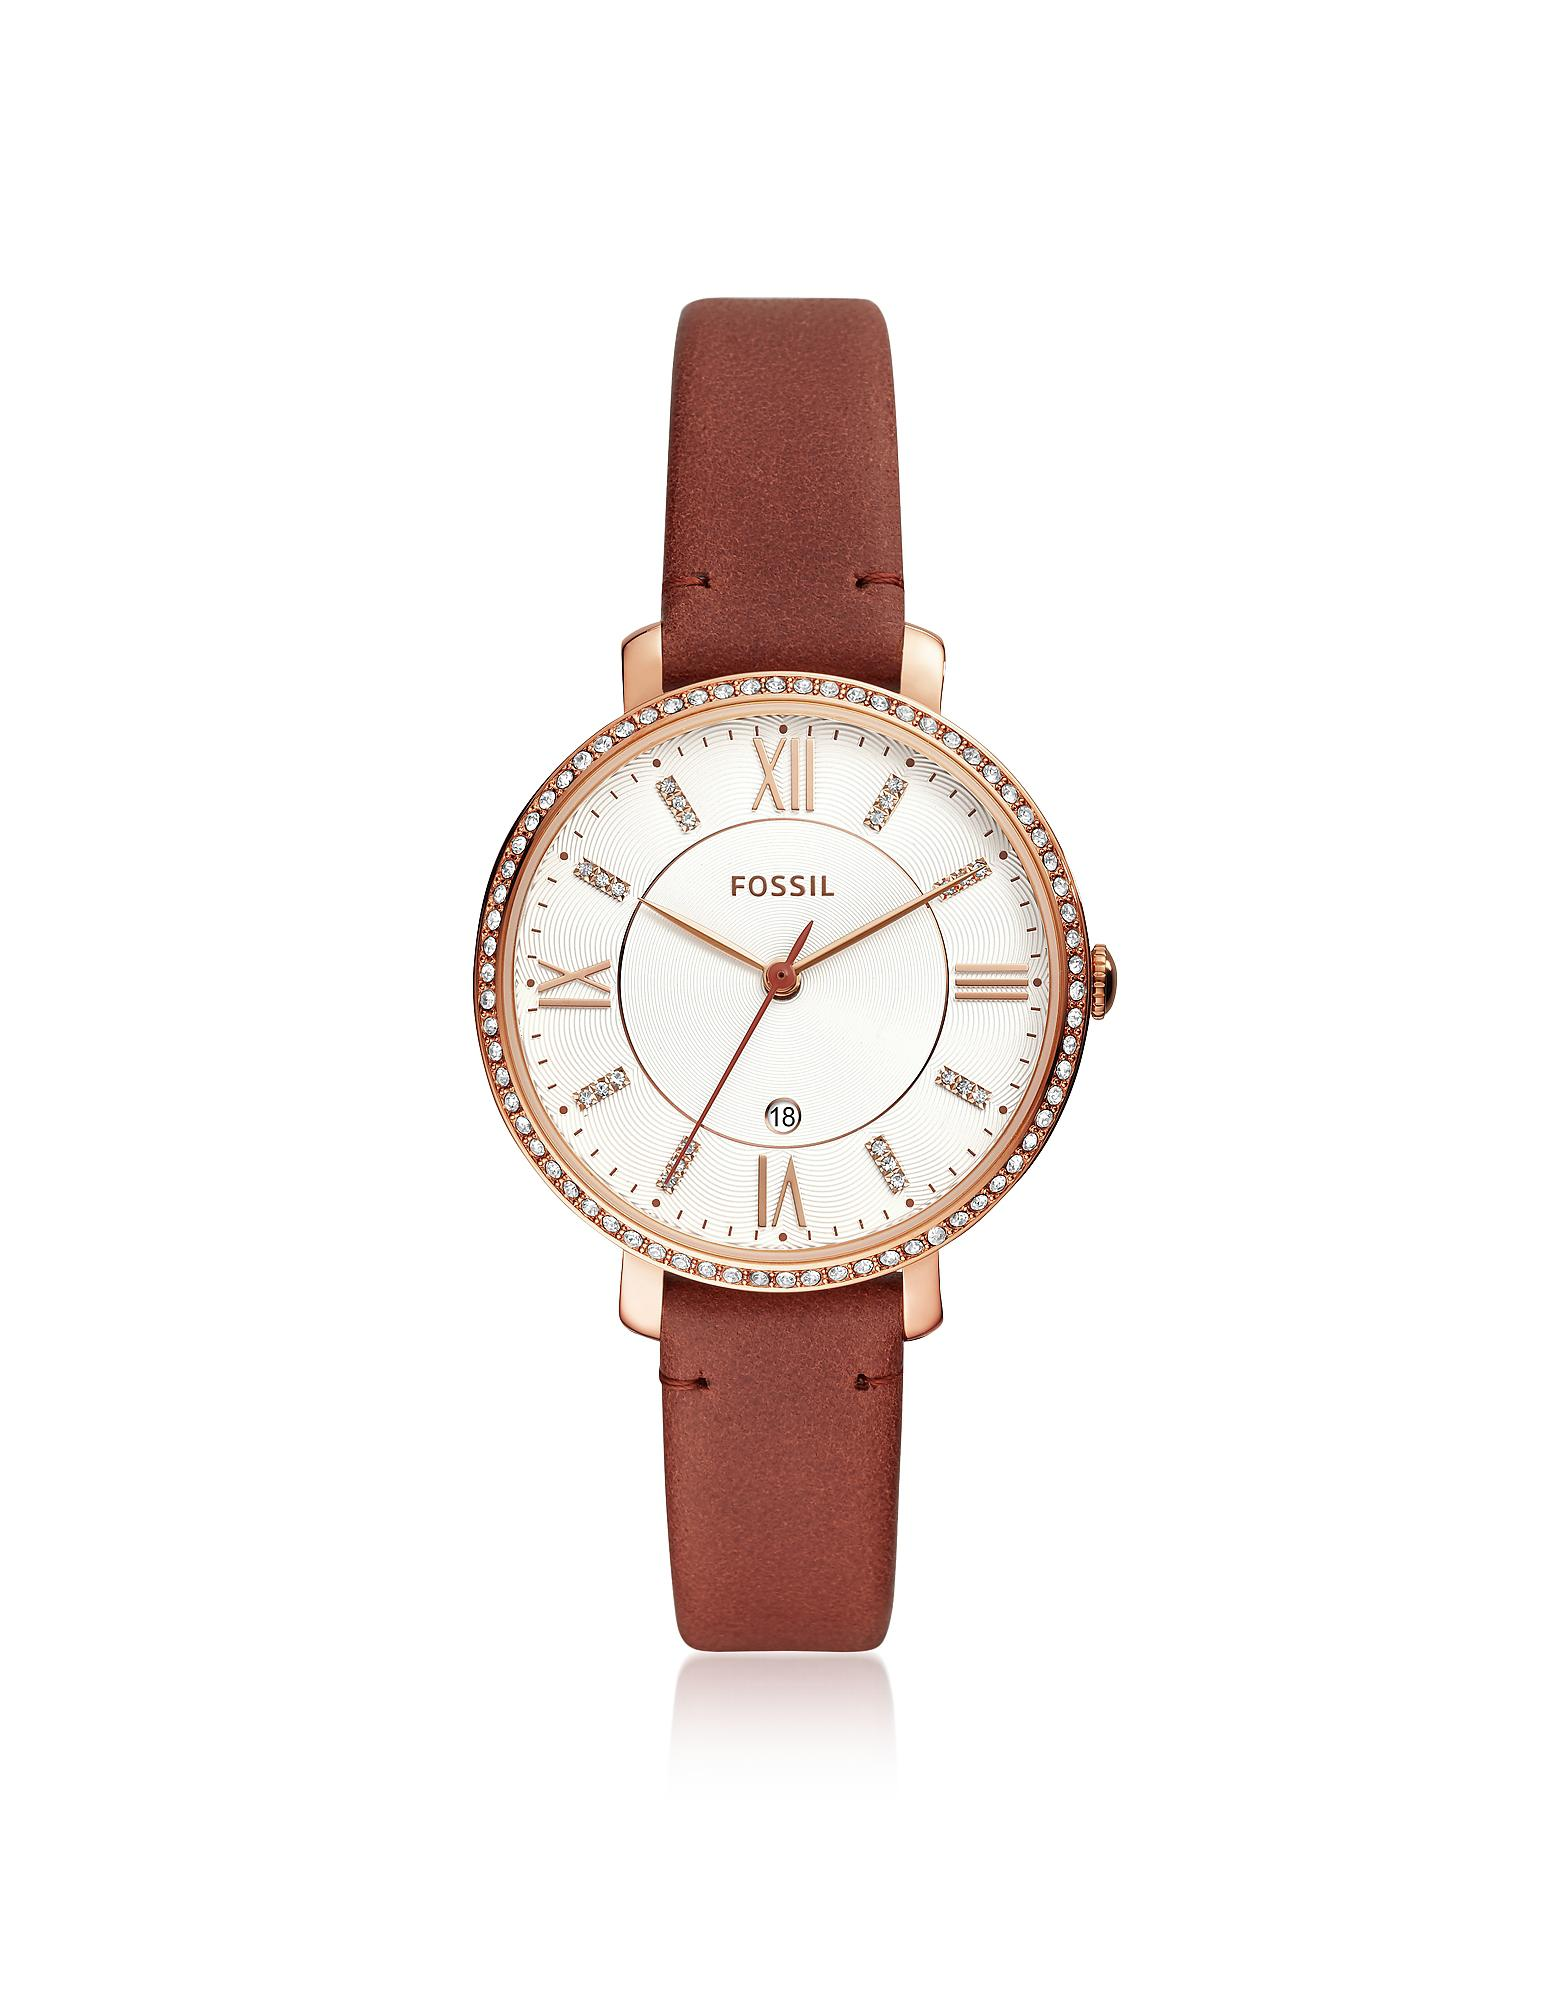 fbe7a6745f4 Fossil Jacqueline Three-hand Crystal Terracotta Leather Watch - Lyst